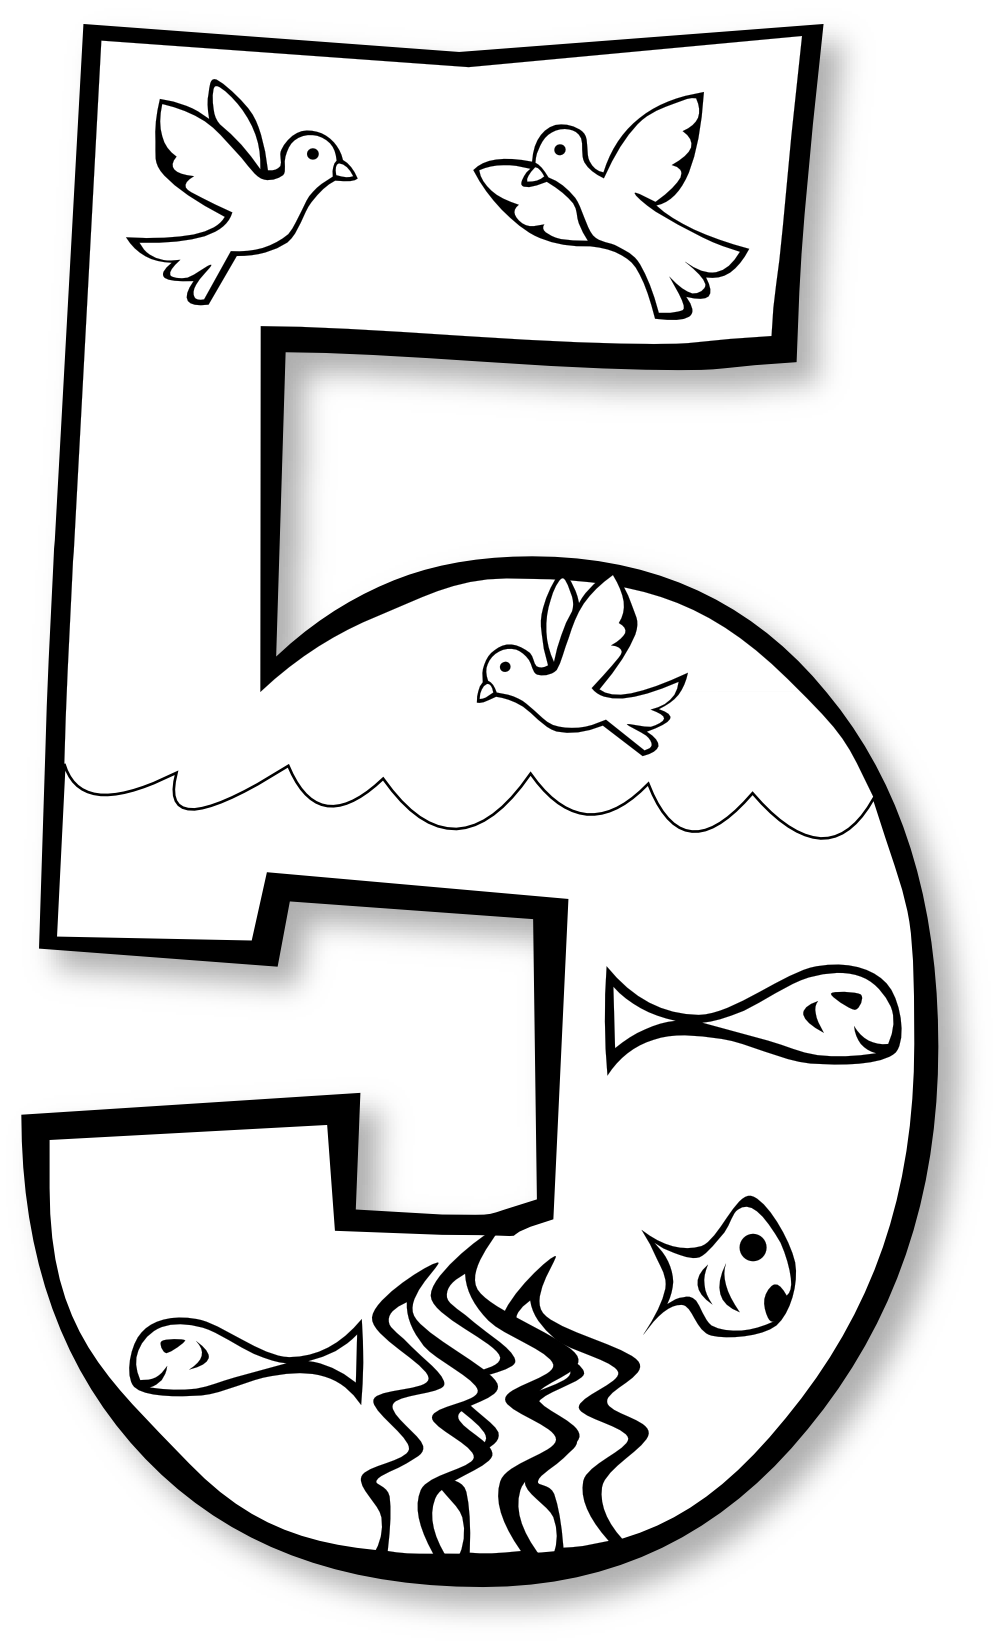 6th Day Of Creation Clipart.